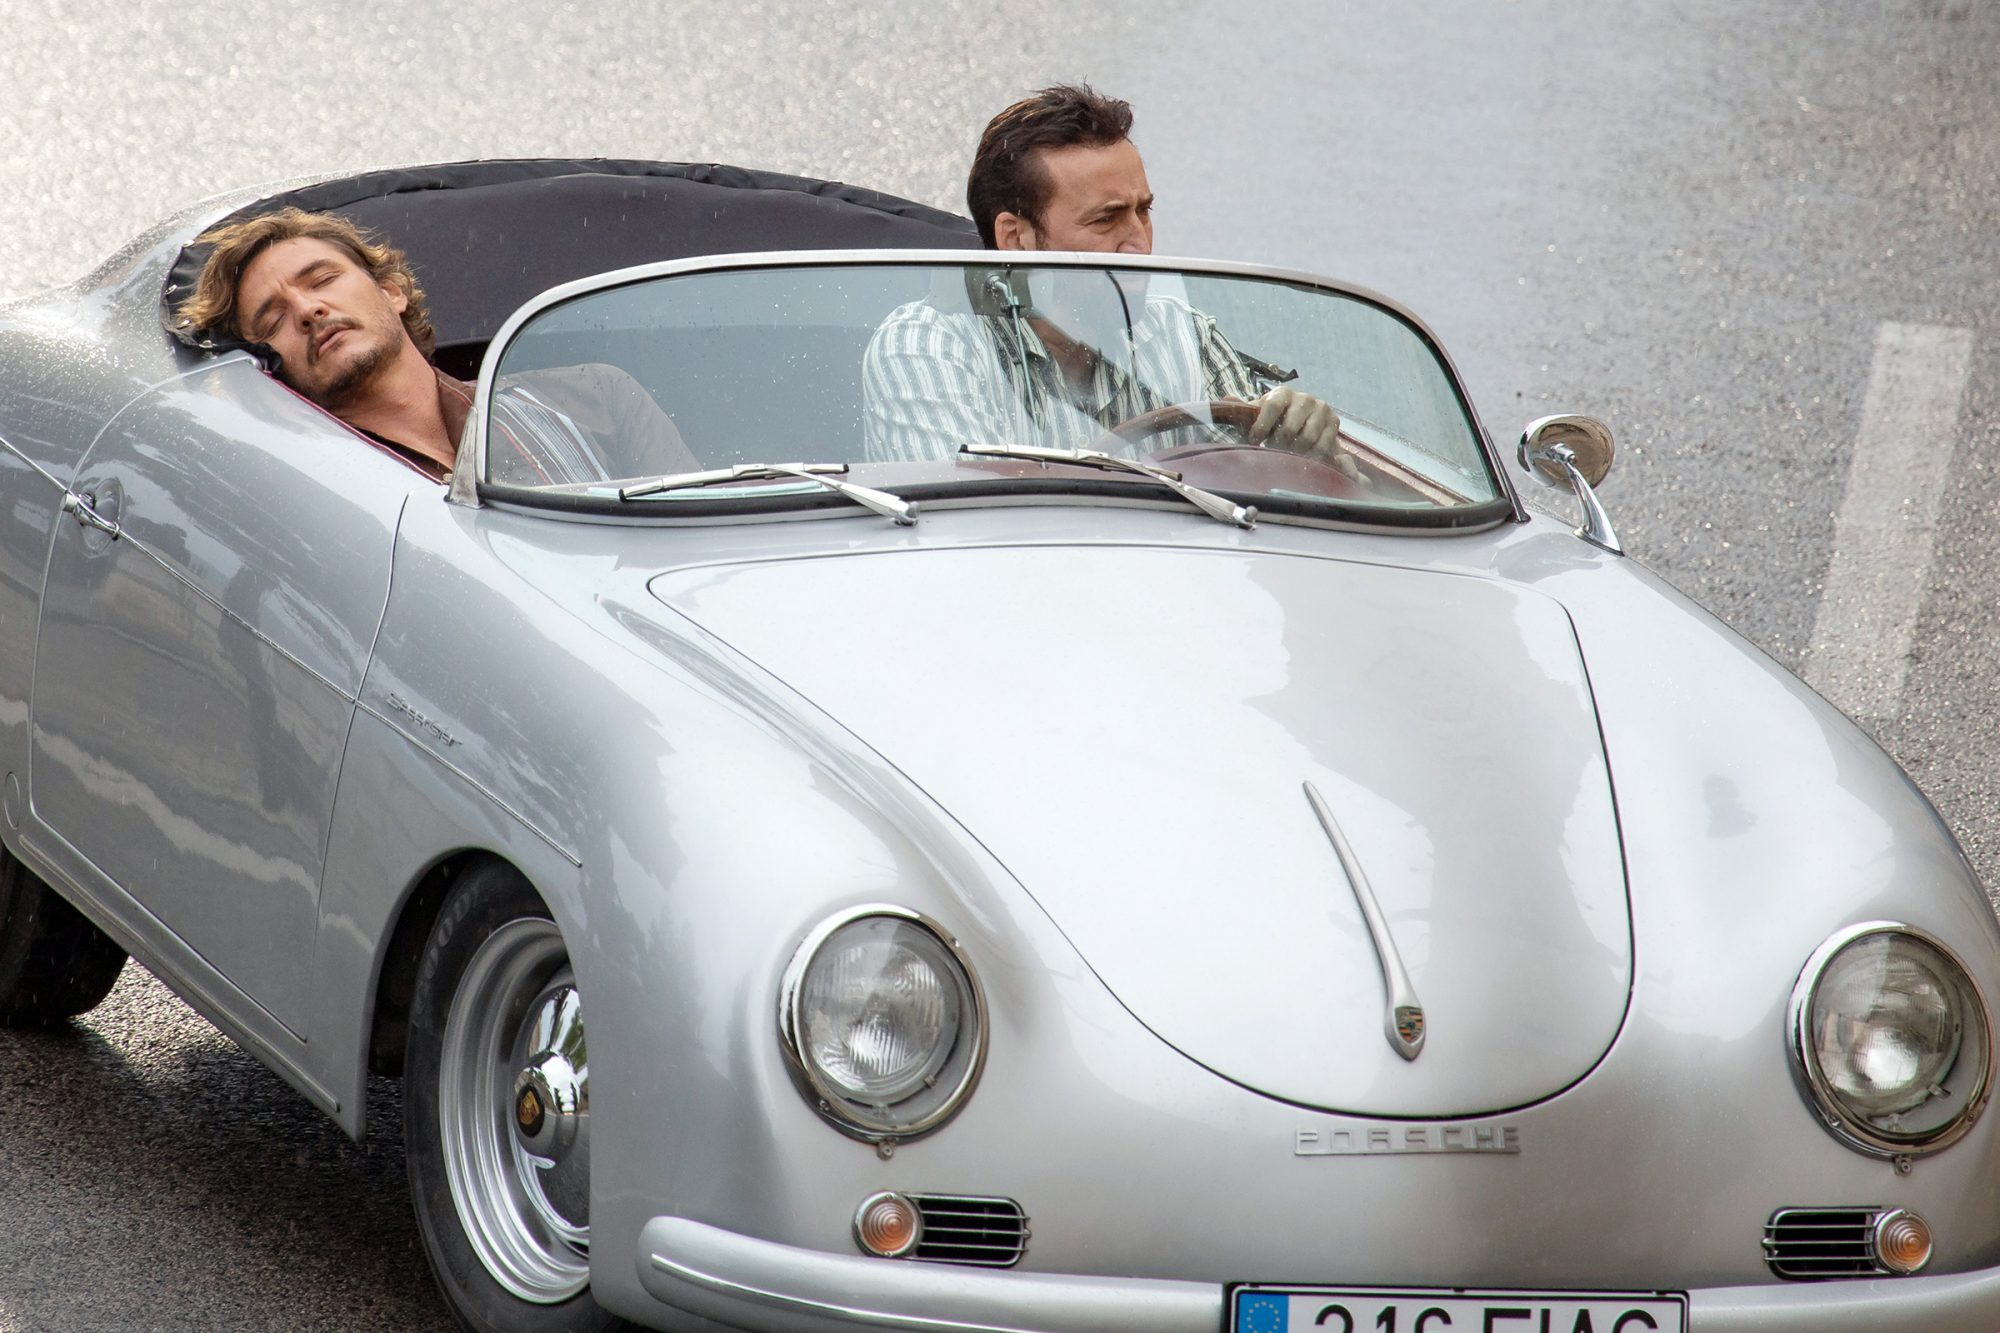 Nicolas Cage And Pedro Pascal Seen In A Silver Porsche Are Filming The Unbearable Weight Of Massive Talent In Dubrovnik